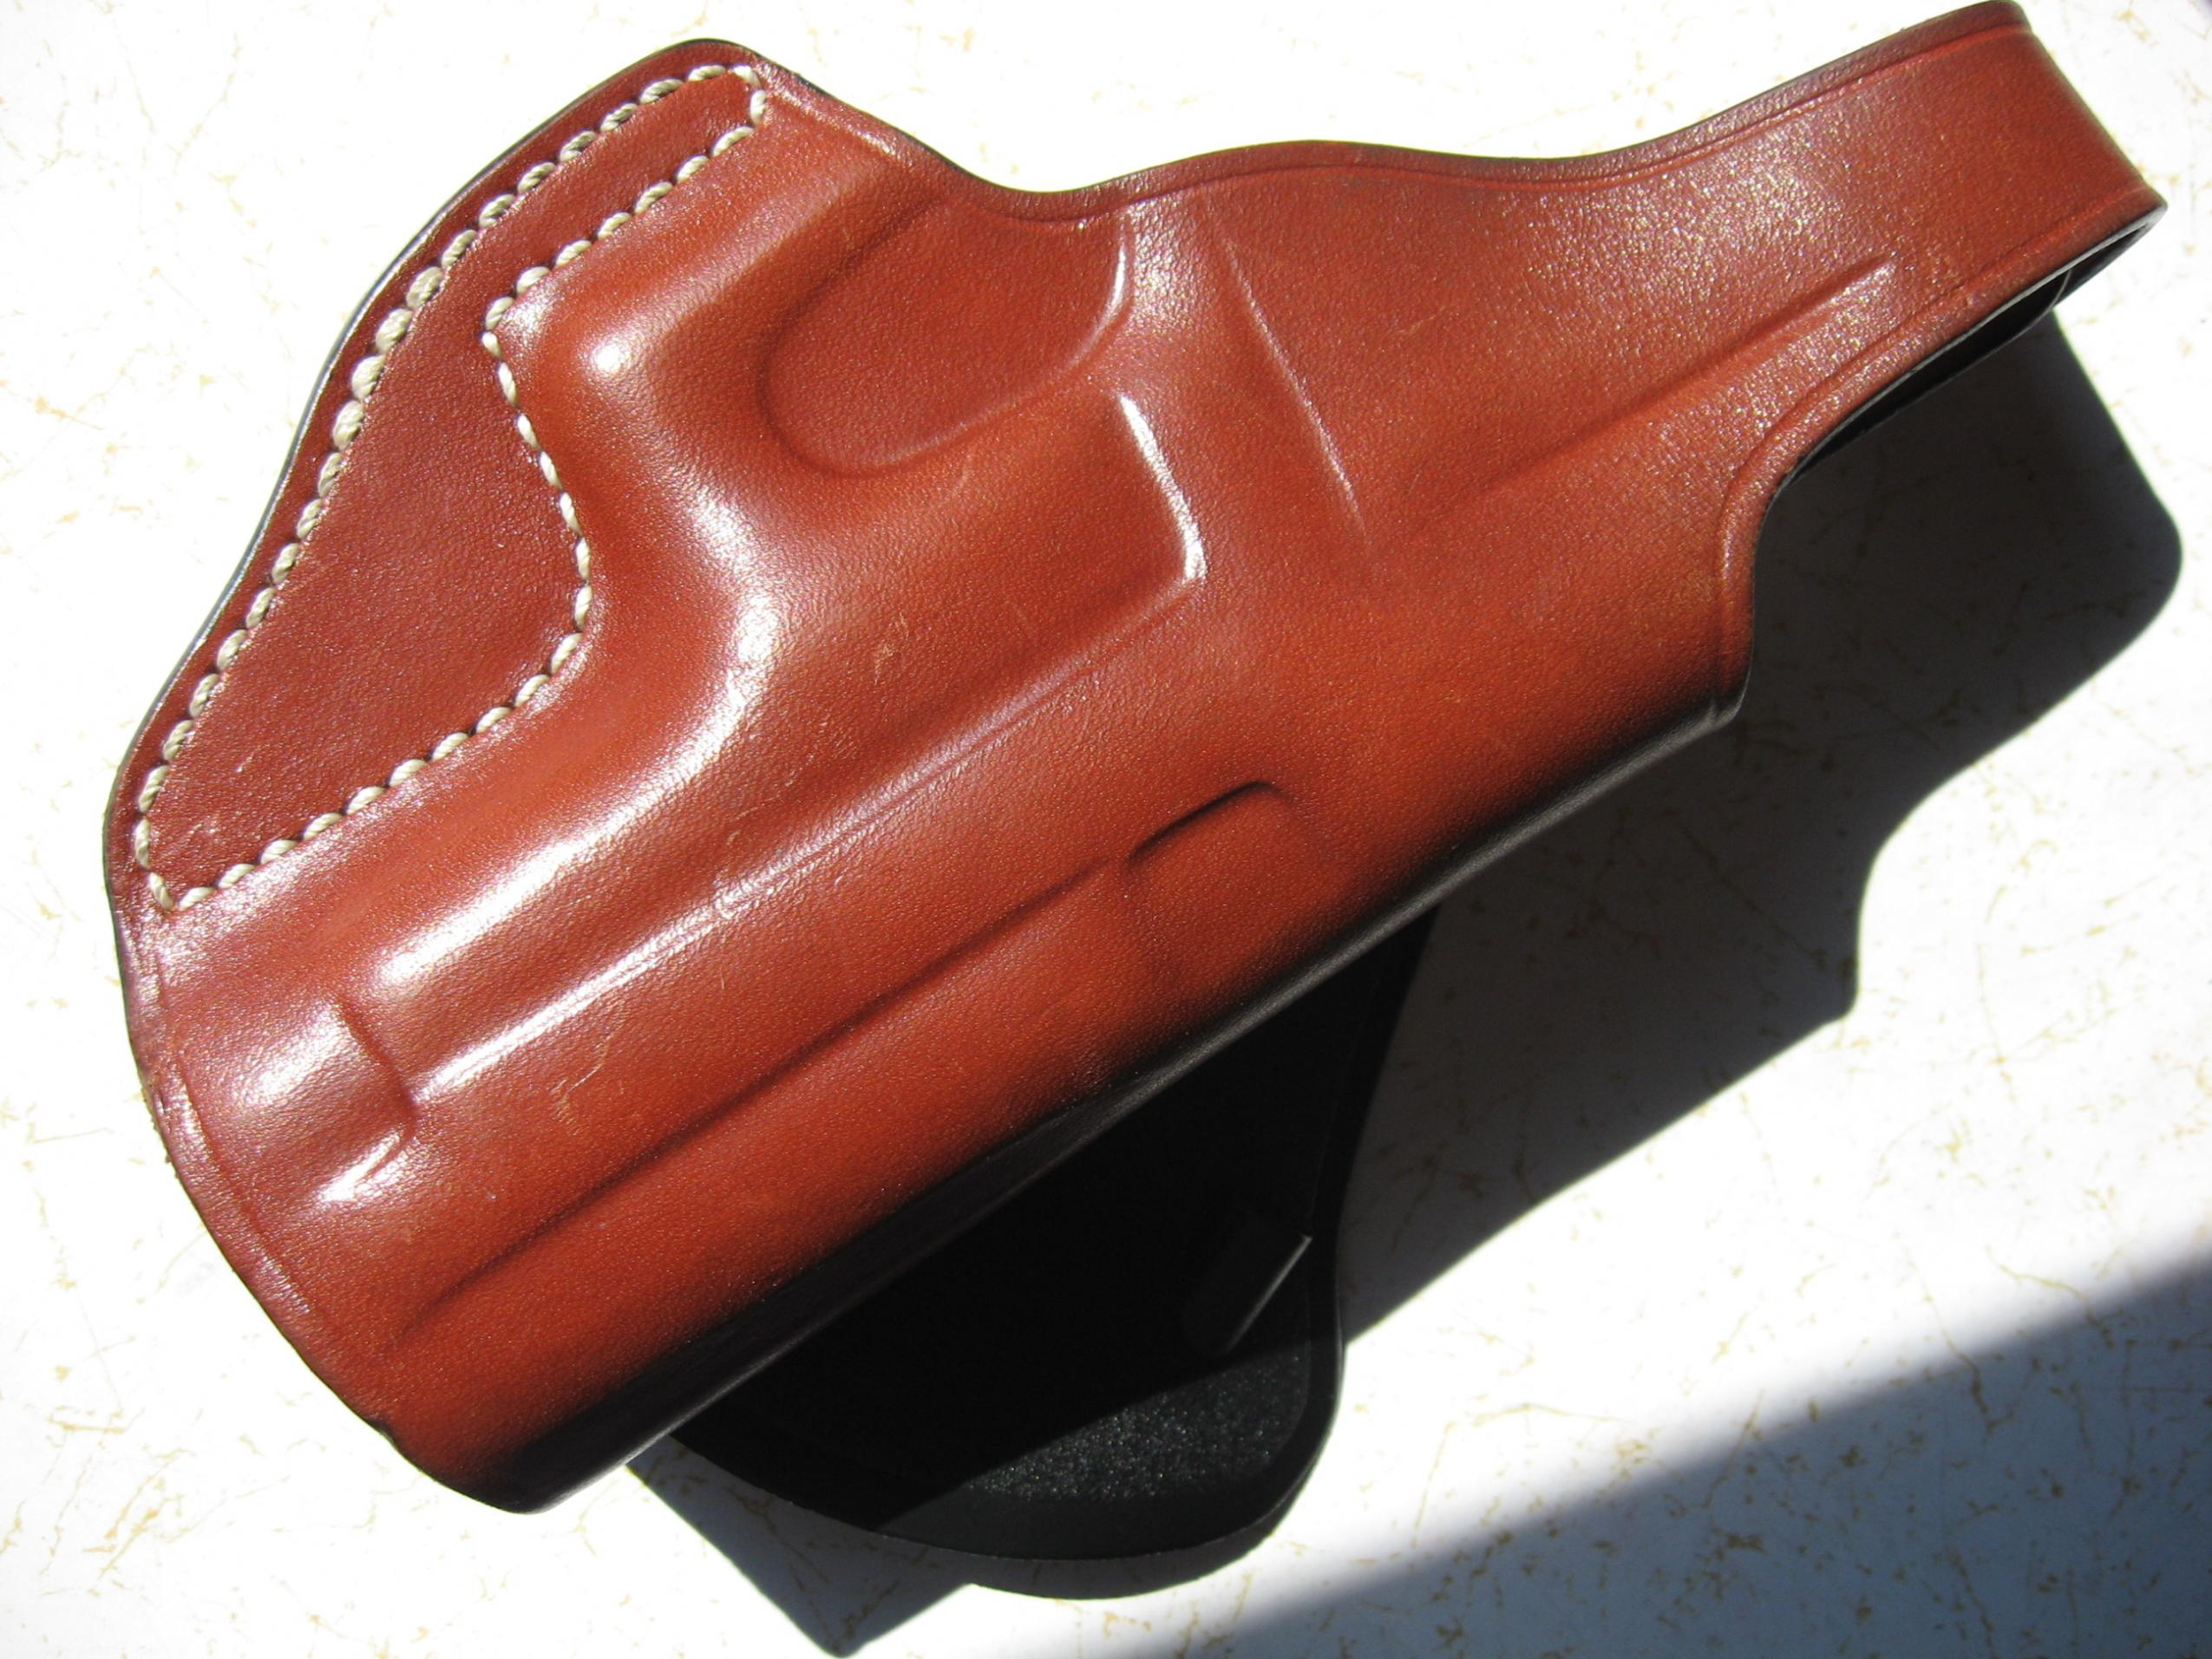 Paddle Holster for SIG 229-paddle-holster-003.jpg